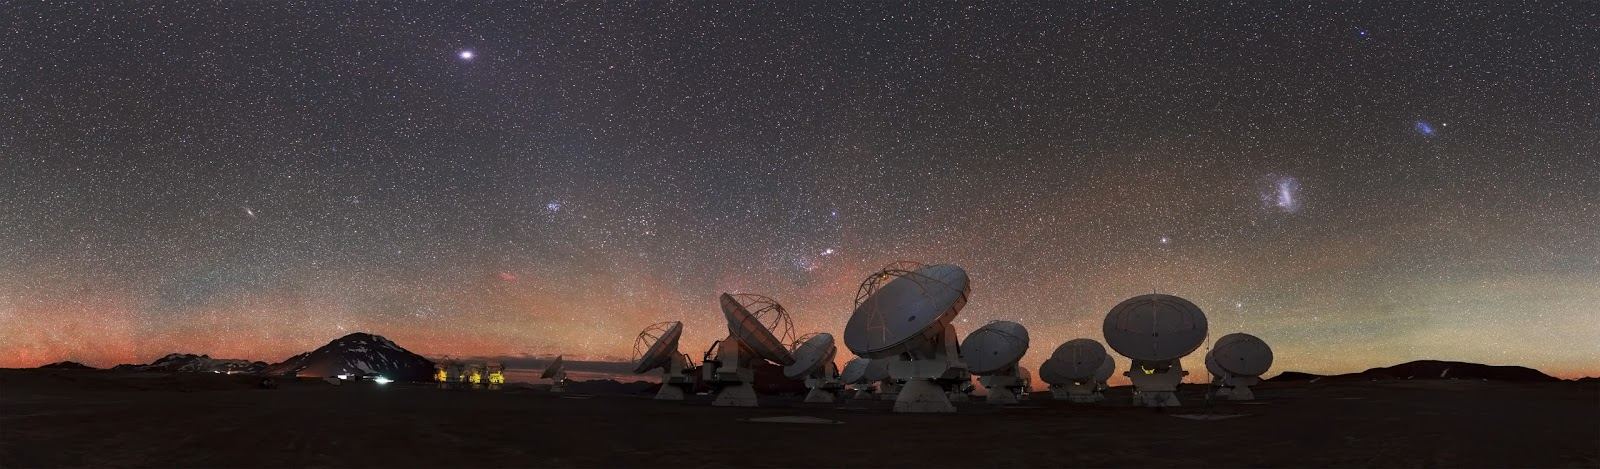 "In Search of Space In Search of Space   At 5000 metres above sea level, high upon the Chajnantor Plateau in Chile, the antennas of the ALMA Observatory peer skywards, scanning the Universe for clues to our cosmic origins. This plateau is one of the highest observatory sites on Earth.  Visible amongst the thousands of stars on the right side of this image are the Small and Large Magellanic Clouds, appearing as luminous smudges in the sky. These cloud-like objects are both galaxies — two of the closest galactic neighbours to our galaxy, the Milky Way.  ALMA's main aim is to observe the coldest and most ancient objects in the cosmos — known as the ""cold Universe"". The array measures radiation emitted in the millimetre and submillimetre wavelengths, which lie in between infrared and radio waves in the electromagnetic spectrum. It features 66 mobile antennas which can be moved and configured over the ALMA site to meet the scientists' requirements, making it the biggest astronomical experiment in existence.  This amazing picture of the ALMA landscape was taken by ESO Photo Ambassador Stéphane Guisard, an optics engineer at the European Southern Observatory's Very Large Telescope in the Atacama Desert, Chile.  Image Credit: ESO/S. Guisard Explanation from: http://www.eso.org/public/images/potw1431a/"